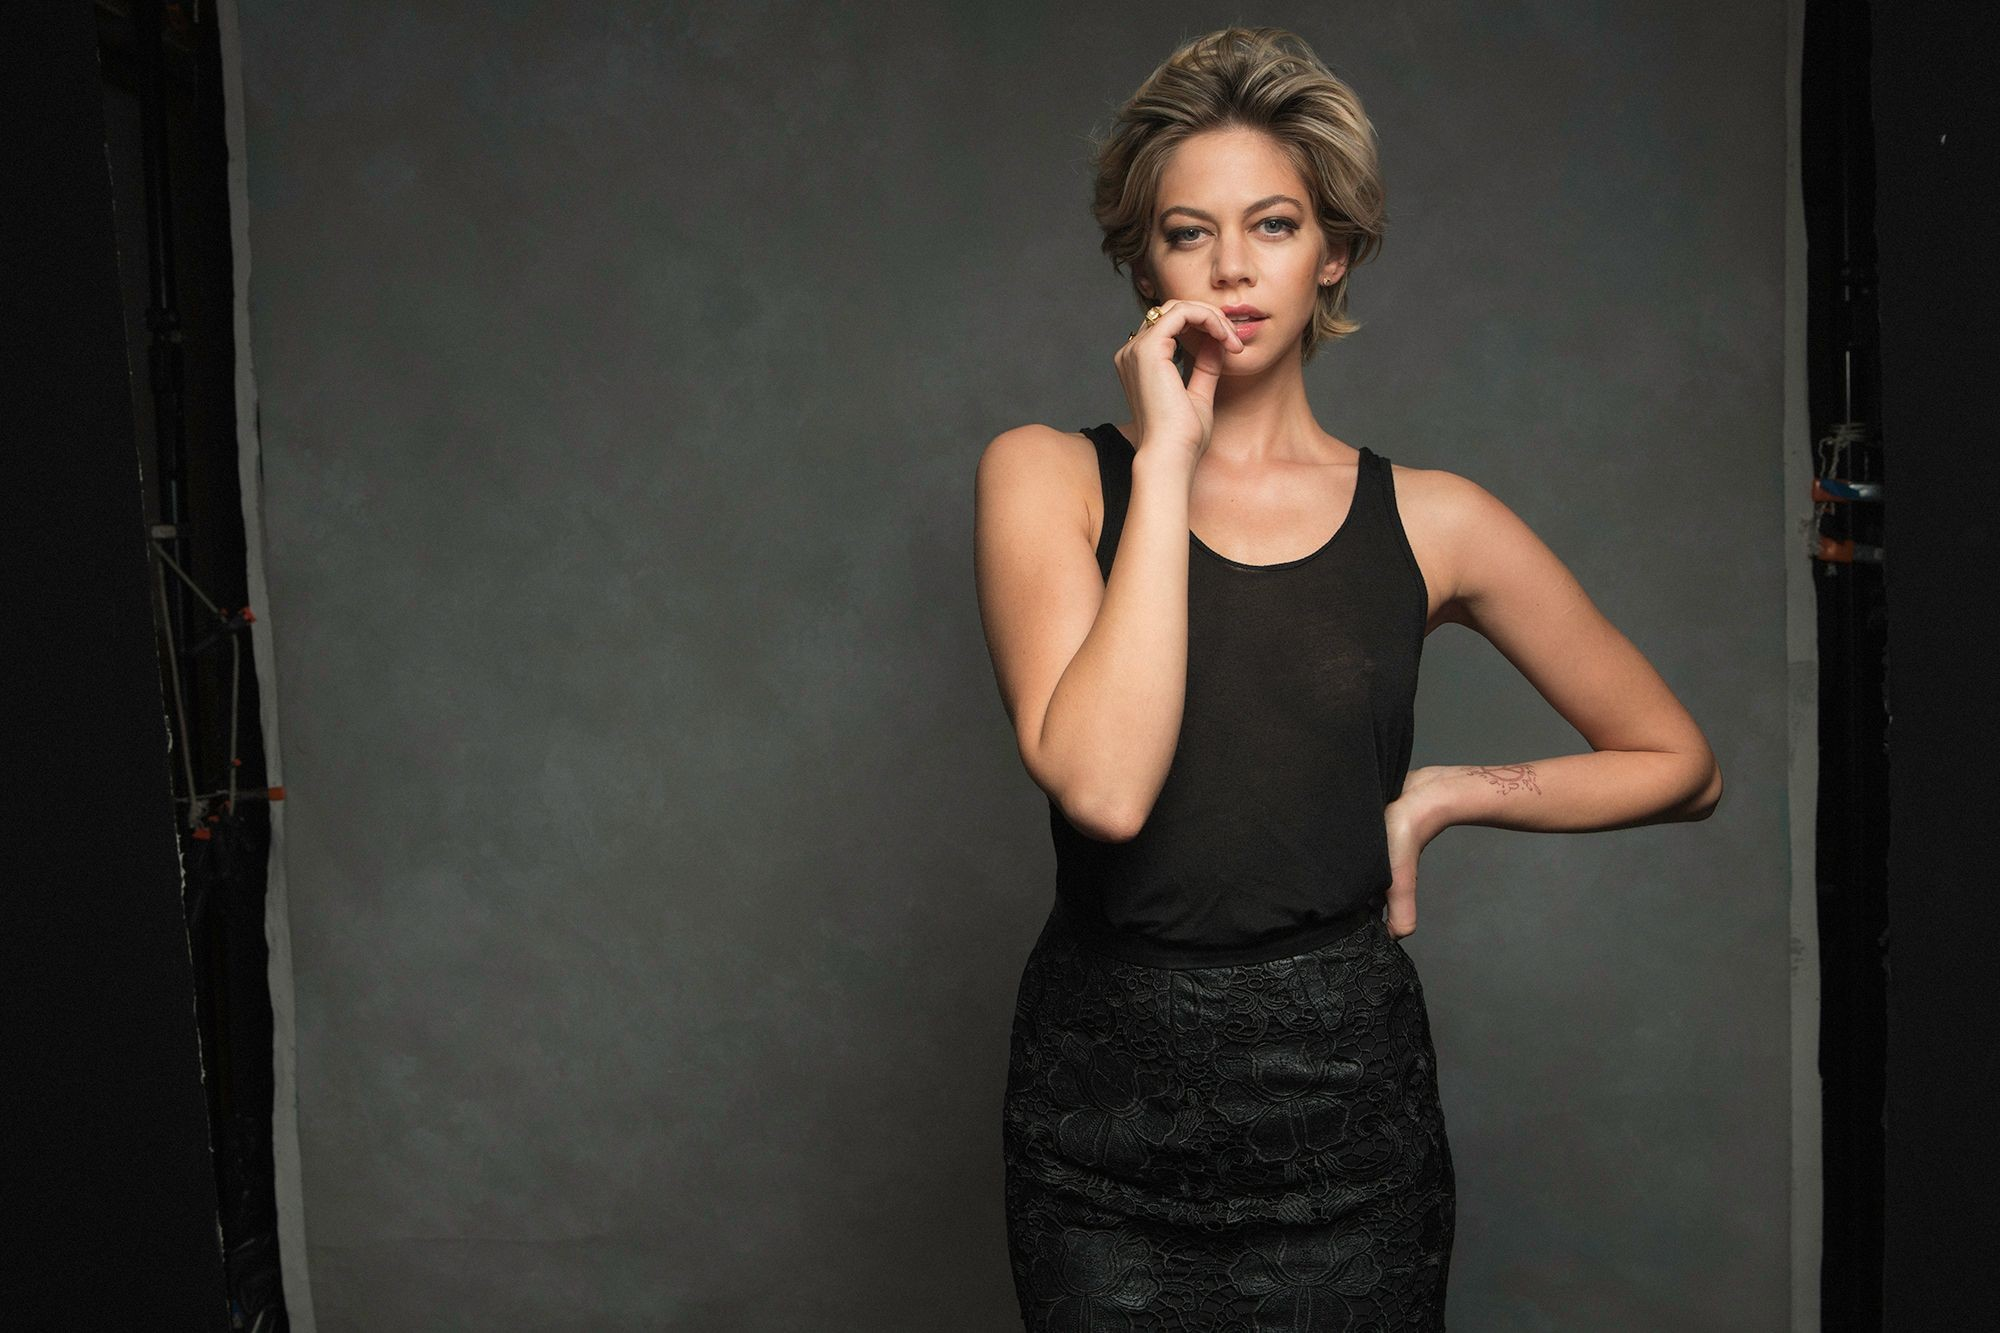 Analeigh Tipton Topless analeigh tipton - page 2 pictures, naked, oops, topless